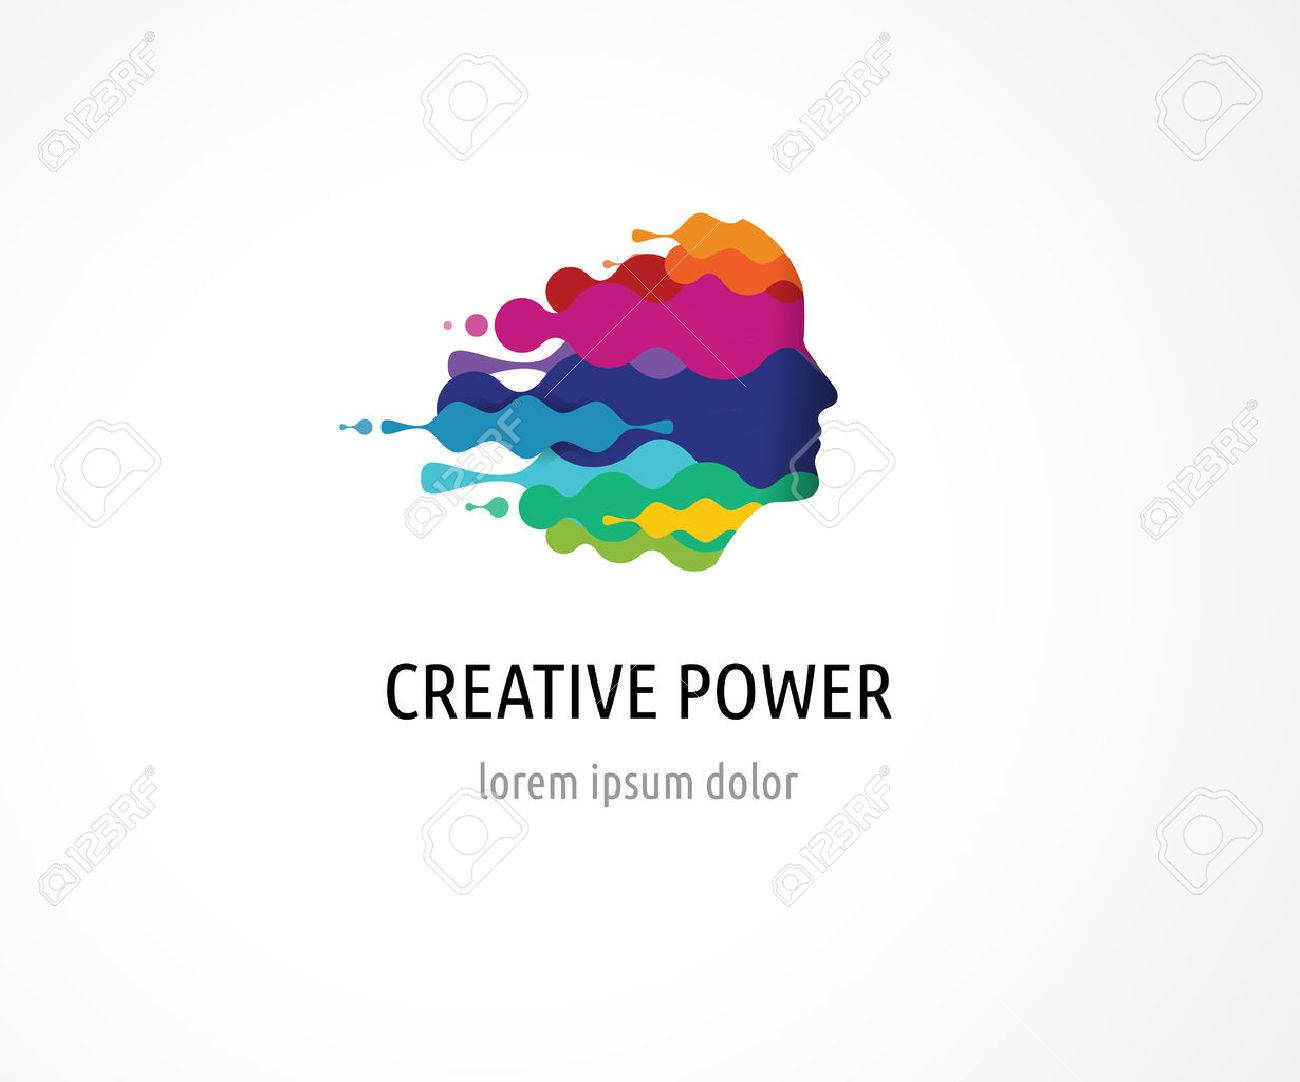 Brain, smart, Creative mind, learning and design icons. Man head, people colorful symbols - 58658856